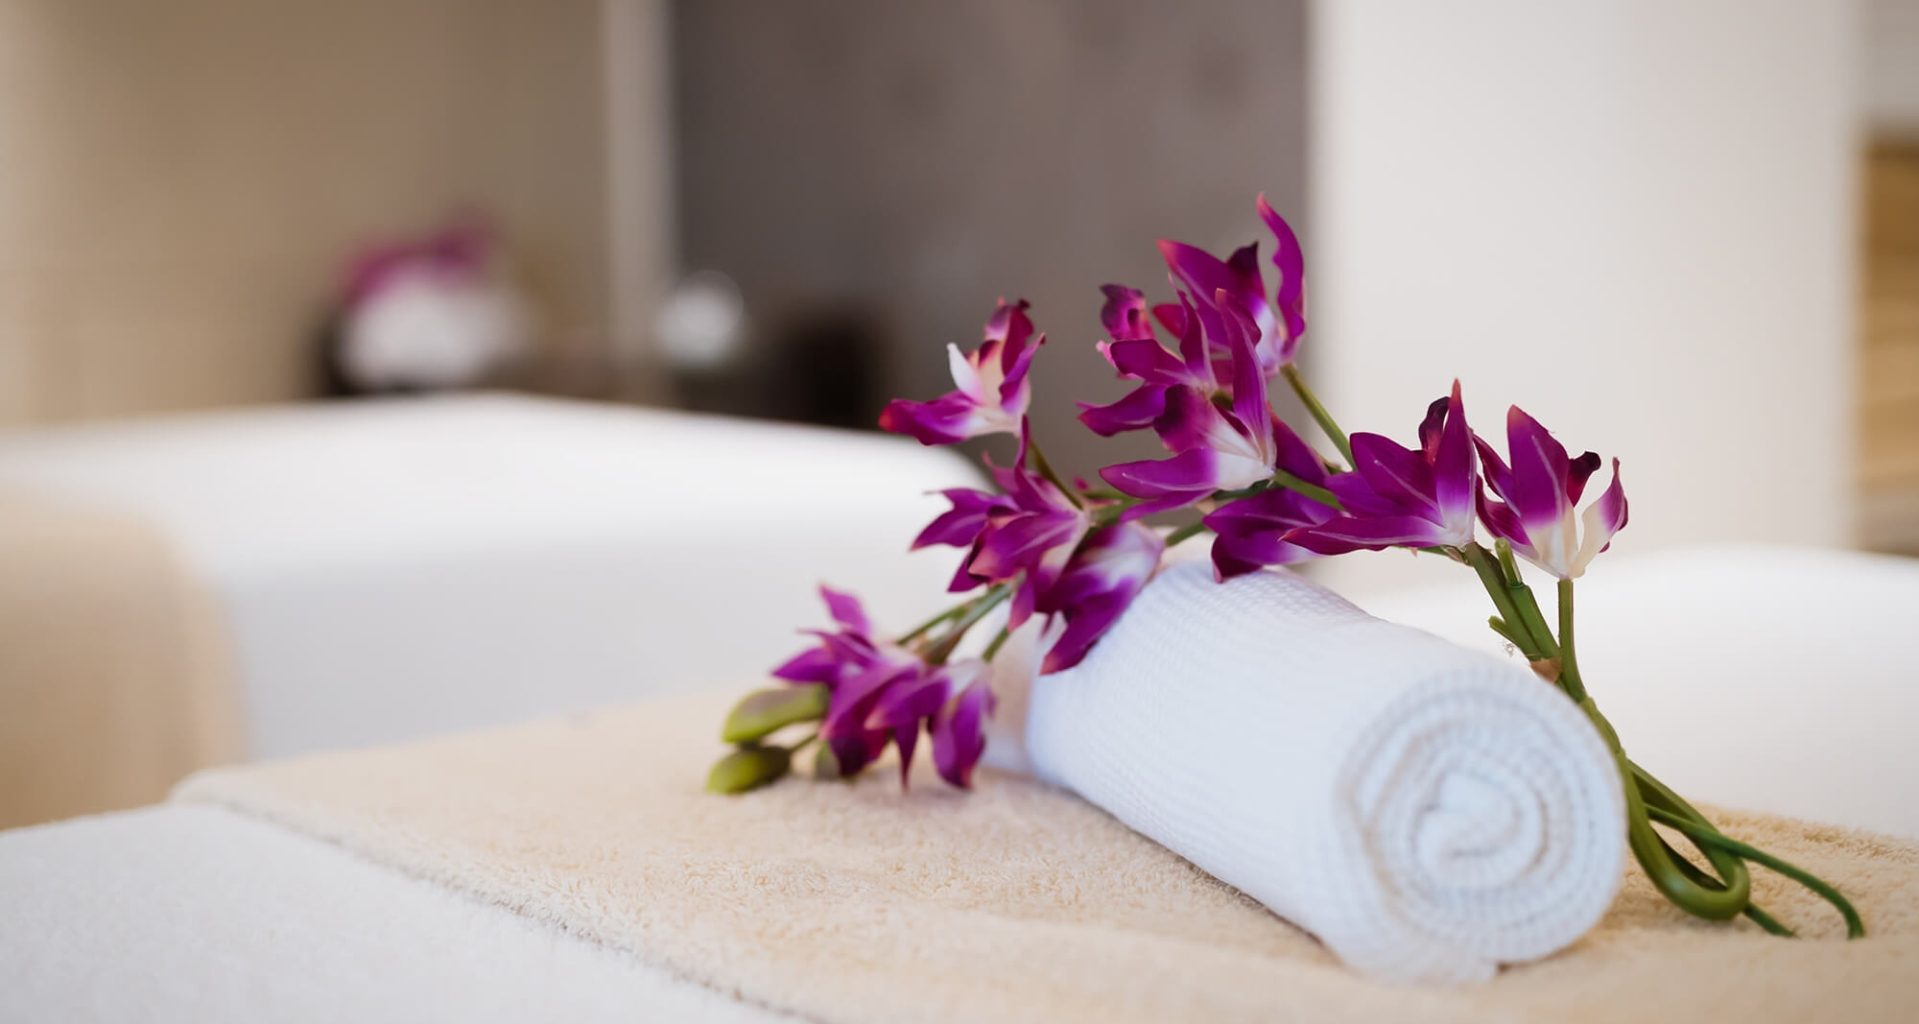 A white towel rolled up and placed on a bed with a flower laying beside it